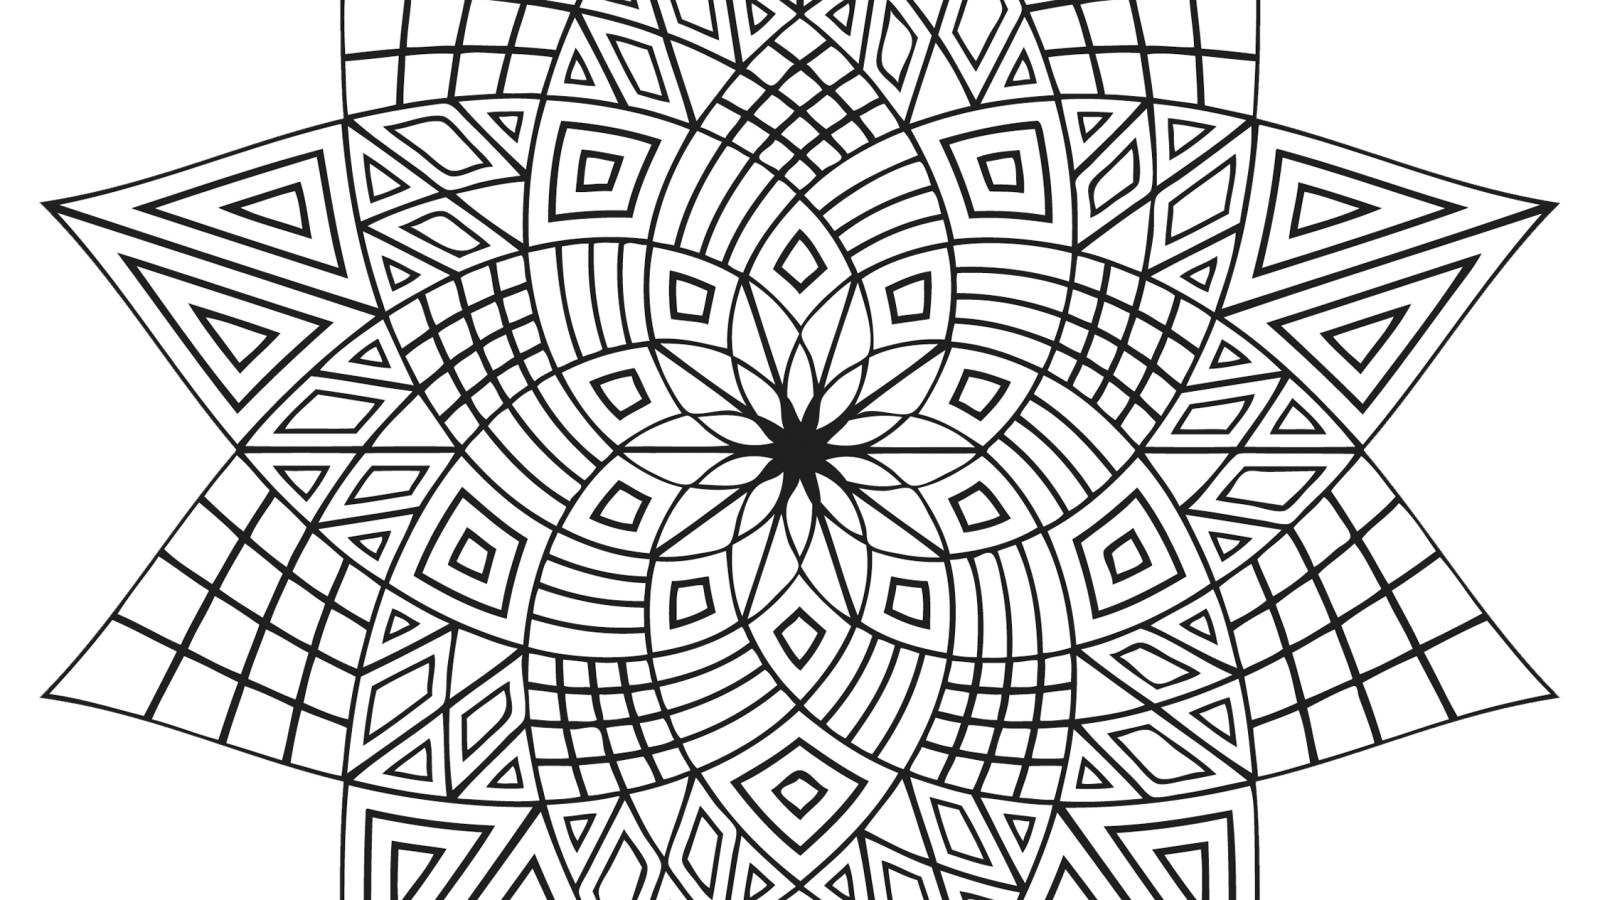 coloring pages geometric shapes - photo#21